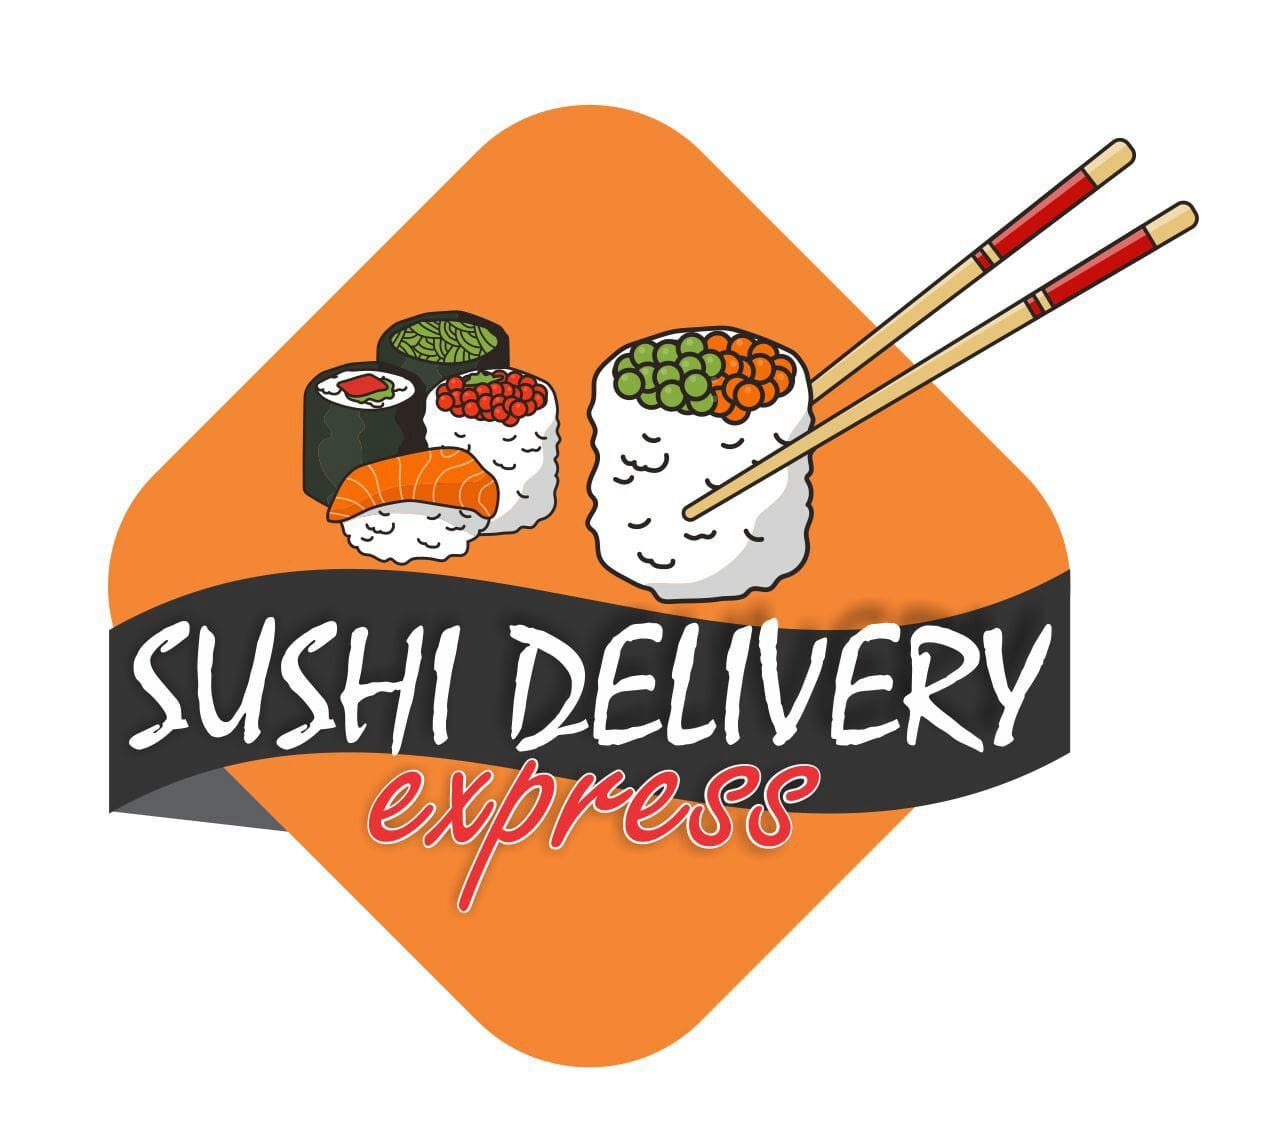 Sushi Delivery Express